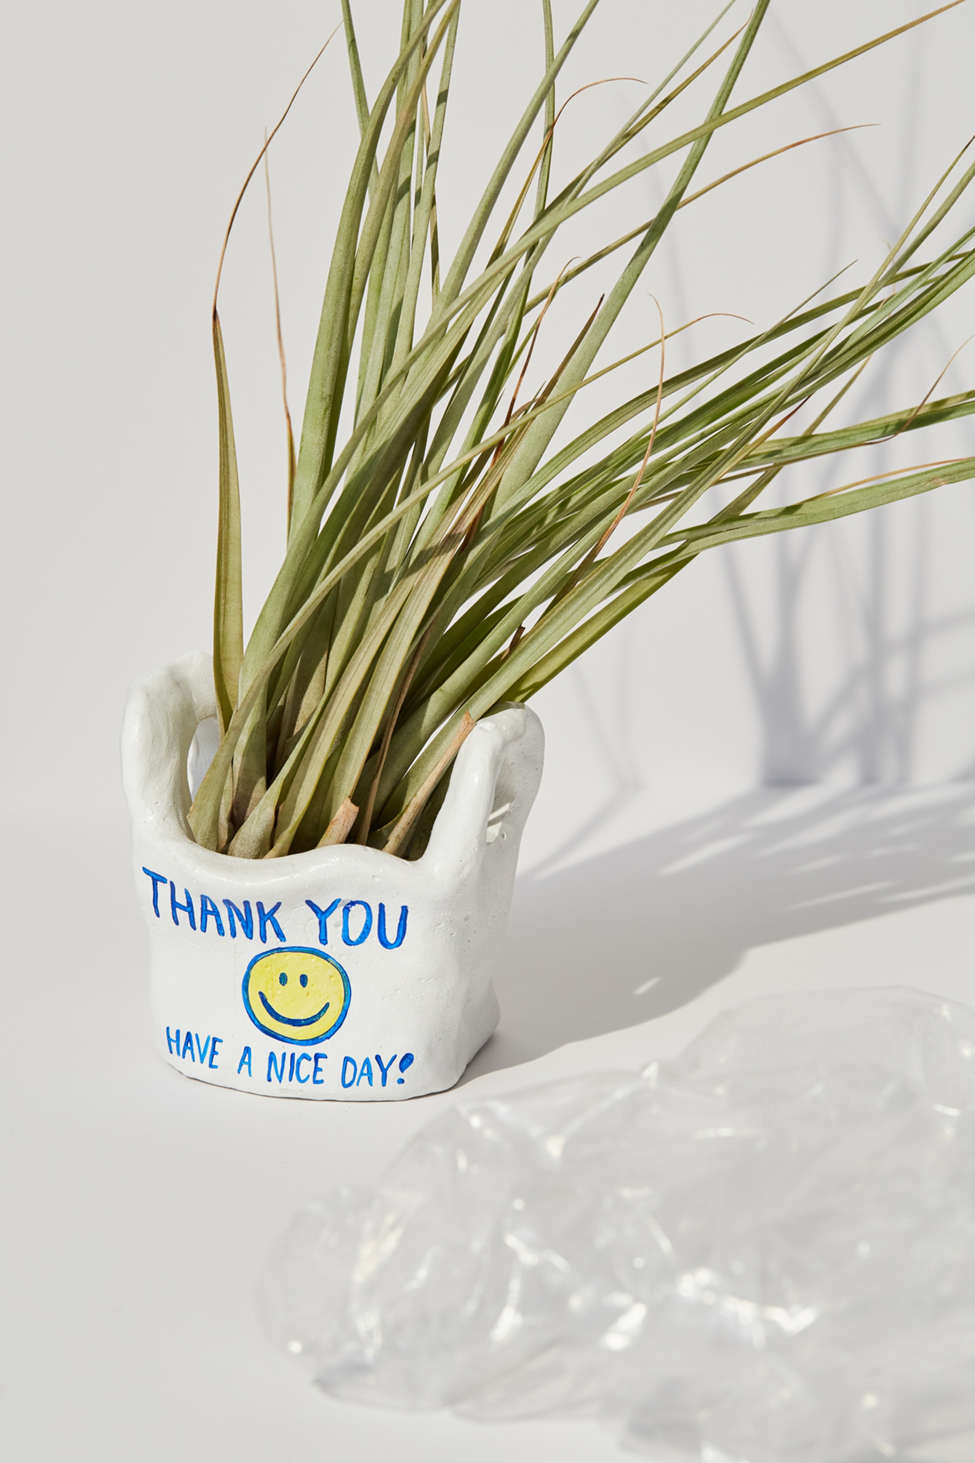 Slide View: 1: Hello Happy Plants Bag Planter